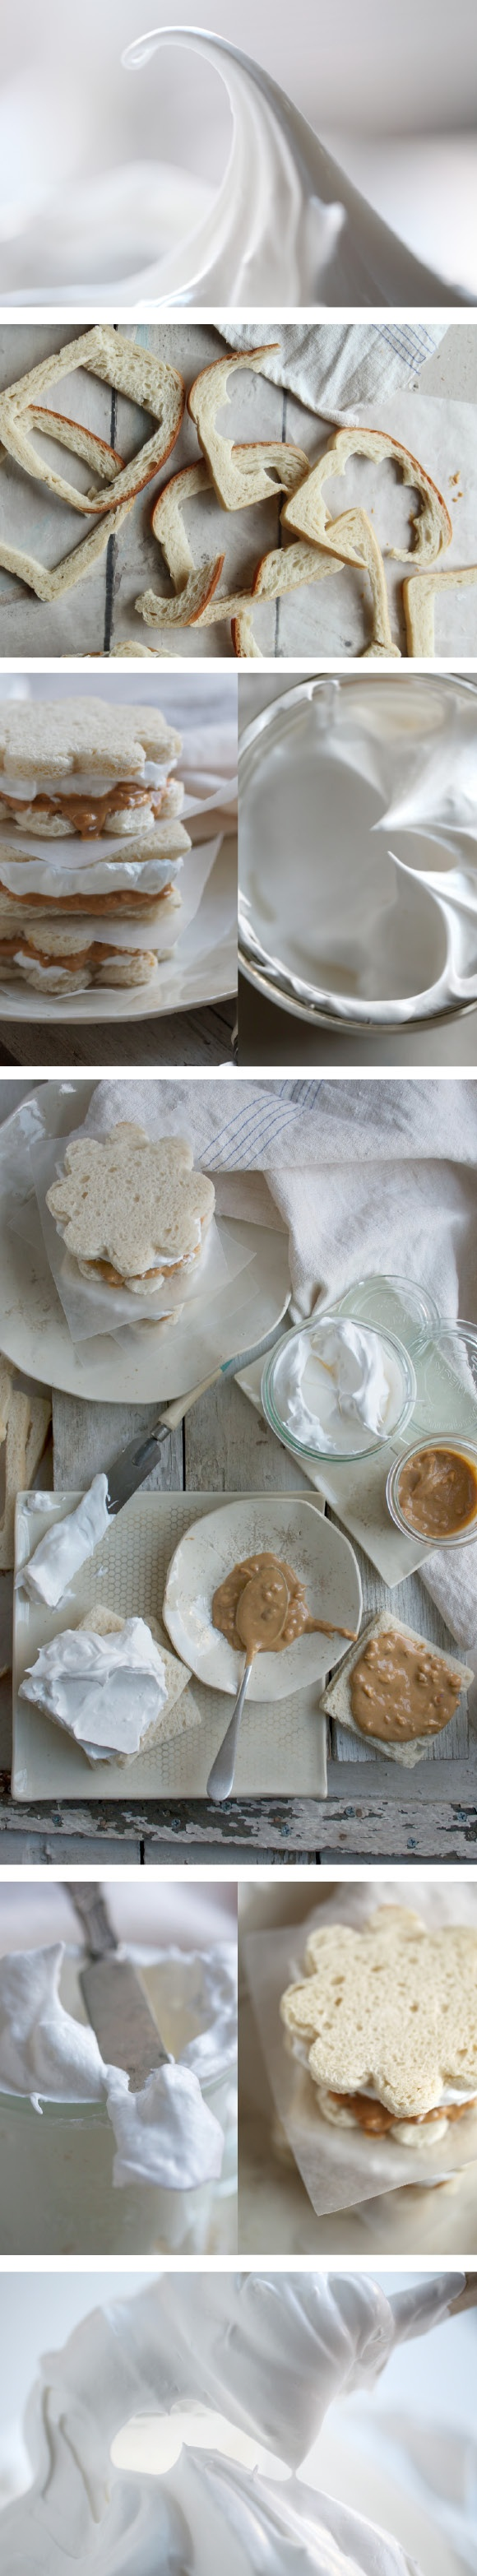 Homemade fluffernutter sandwiches. These pictures make me wish I could eat peanut butter!